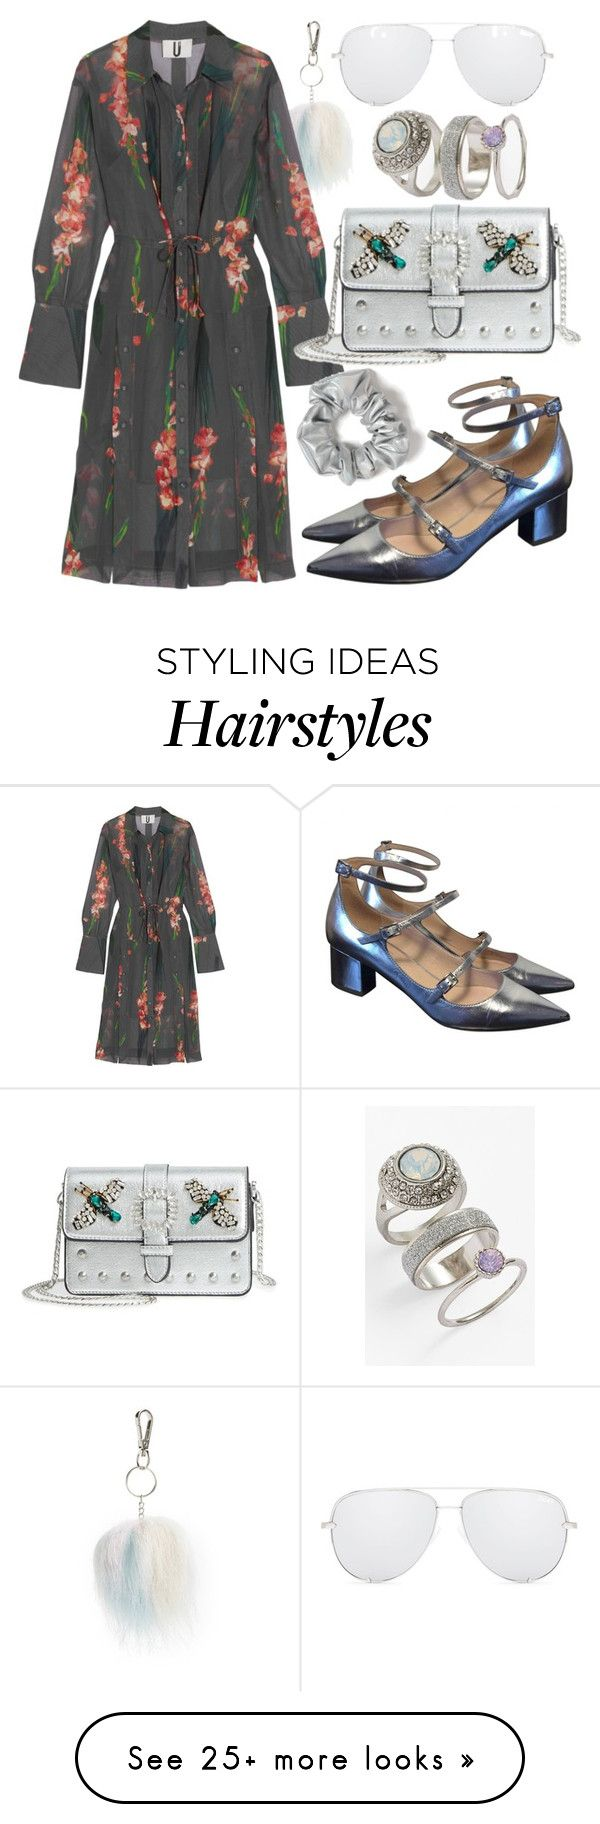 """""""#PolyPresents: Party Dresses"""" by farrahdyna on Polyvore featuring Topshop, Topshop Unique, contestentry and polyPresents"""